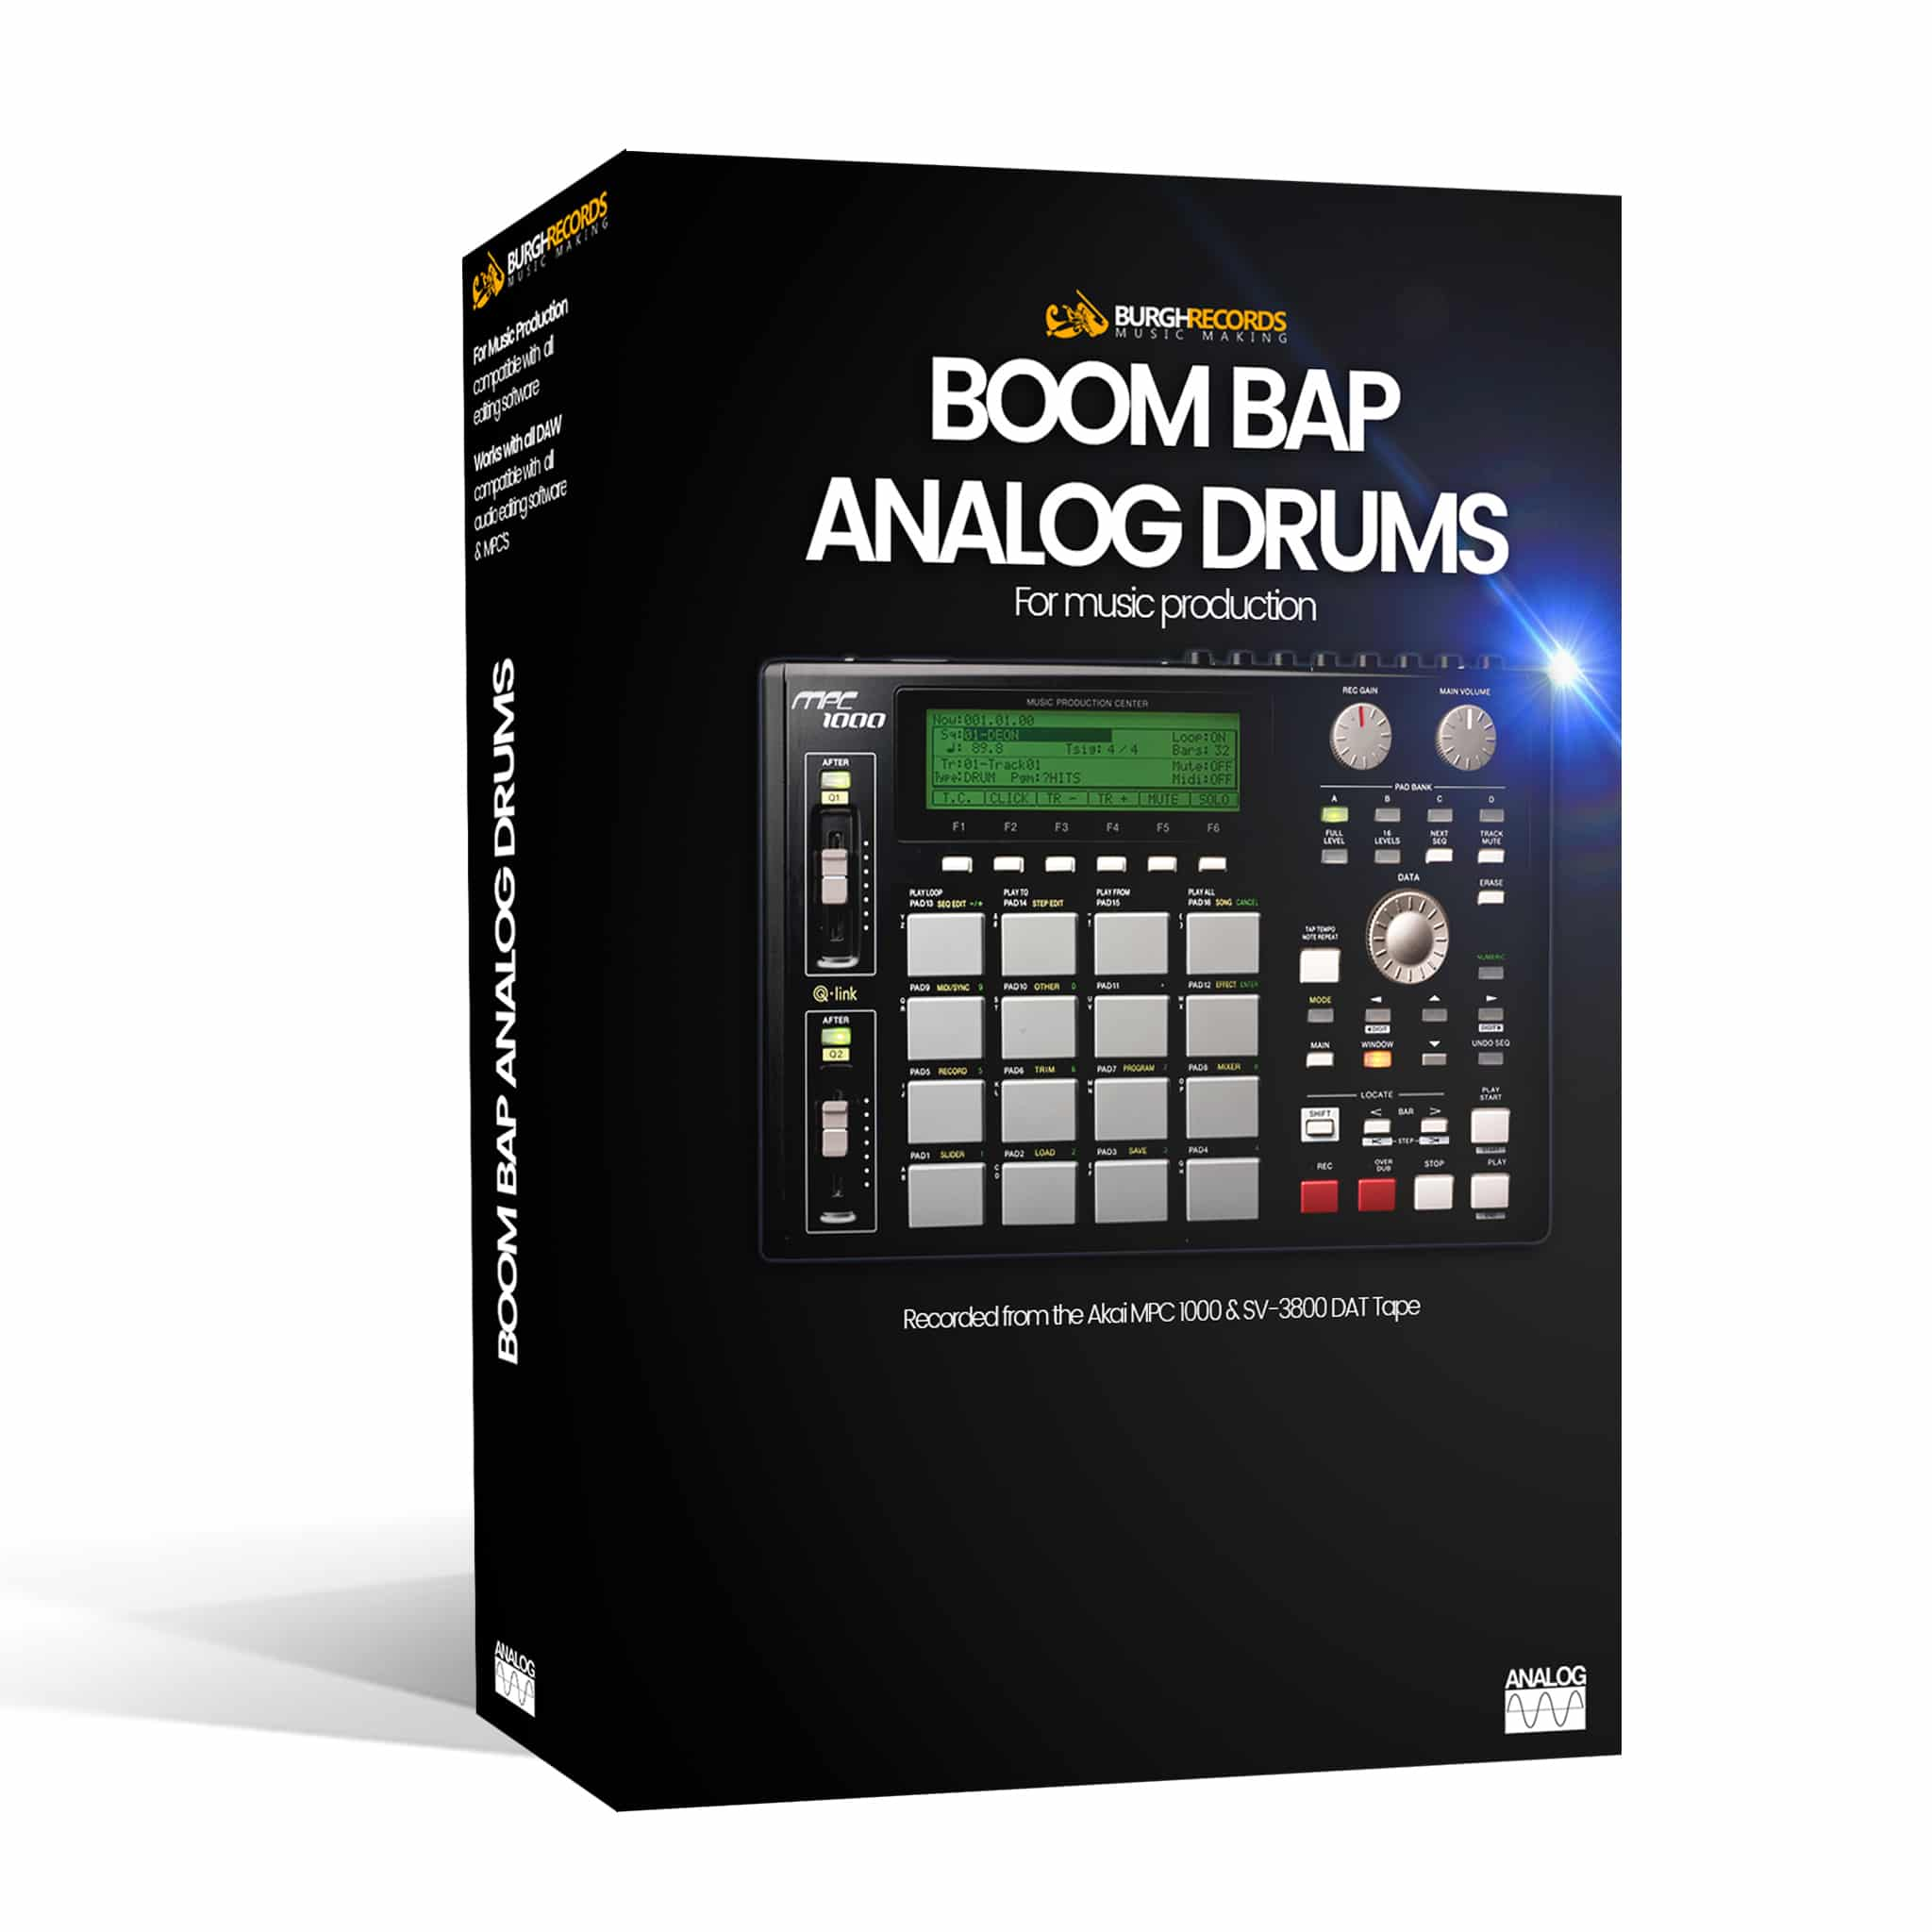 Boom Bap Analog Drums